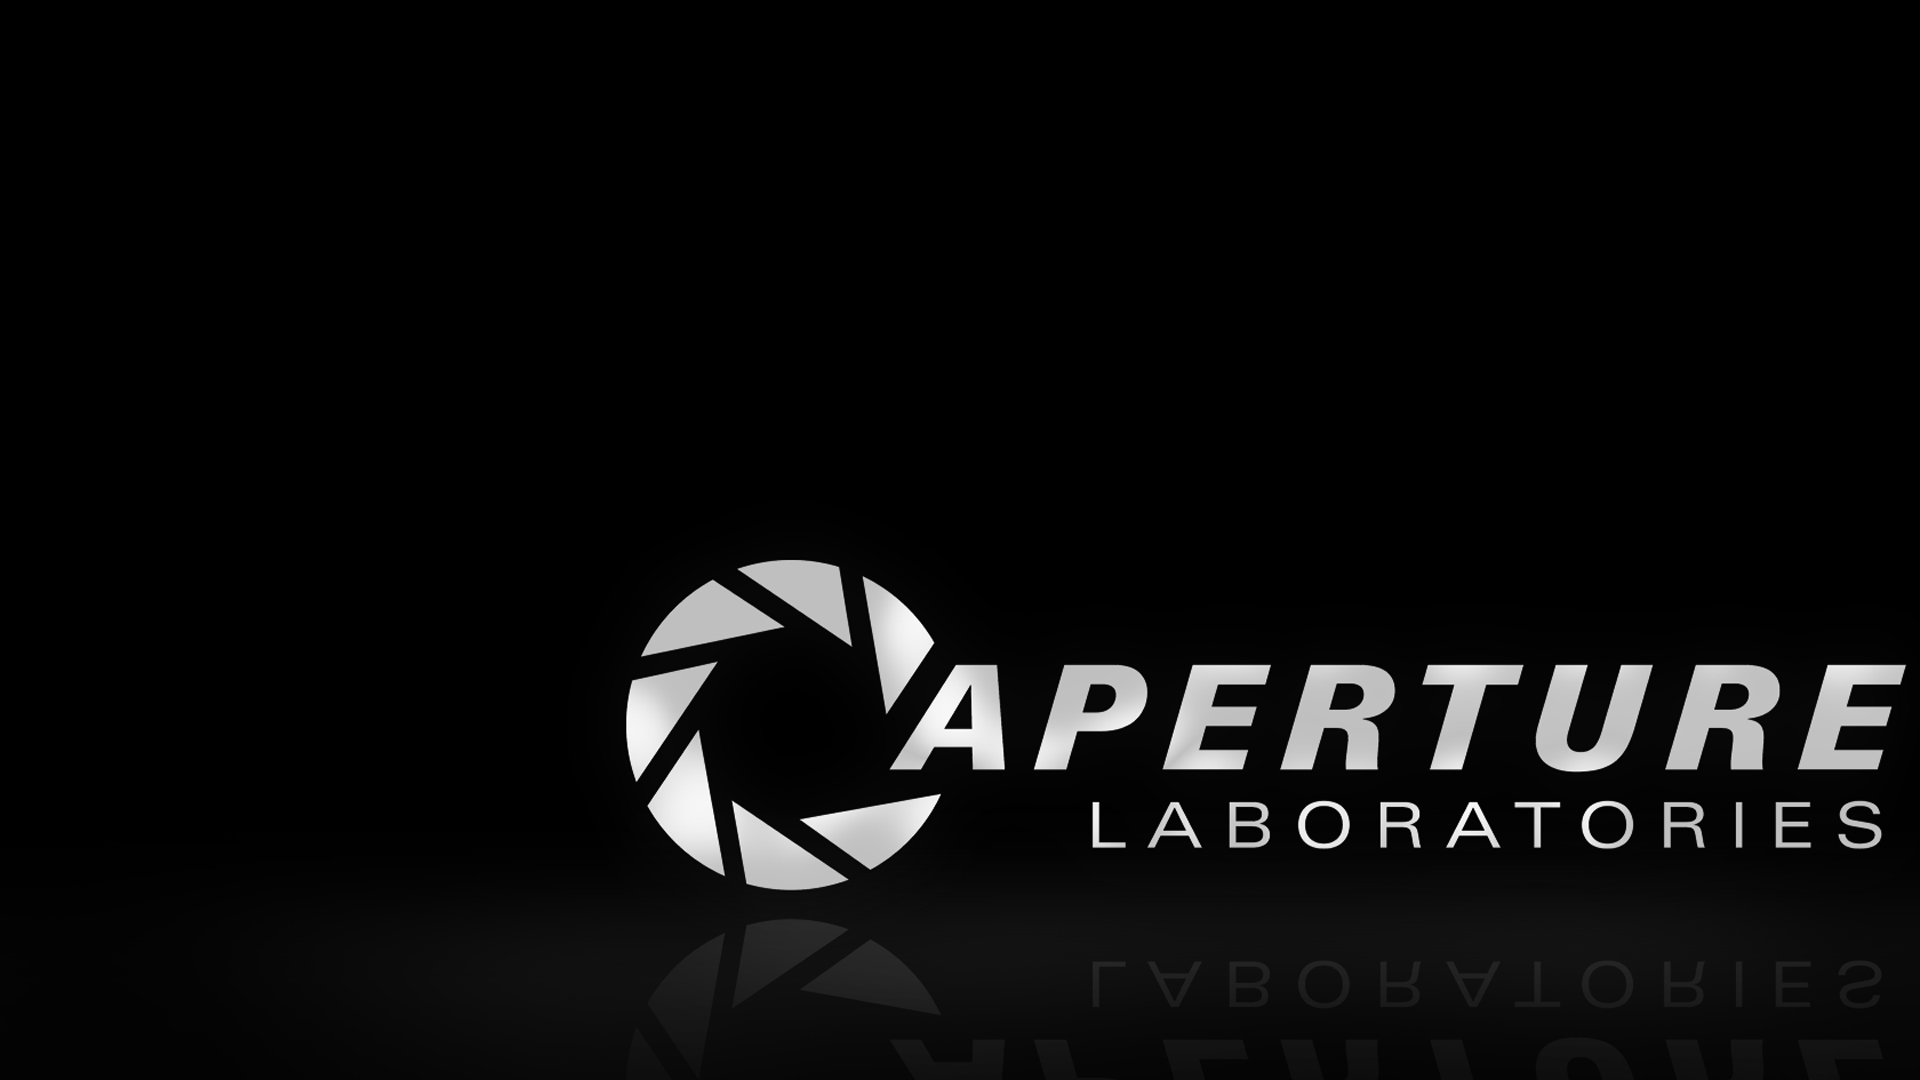 aperture science b/w hd wallpaper » fullhdwpp - full hd wallpapers